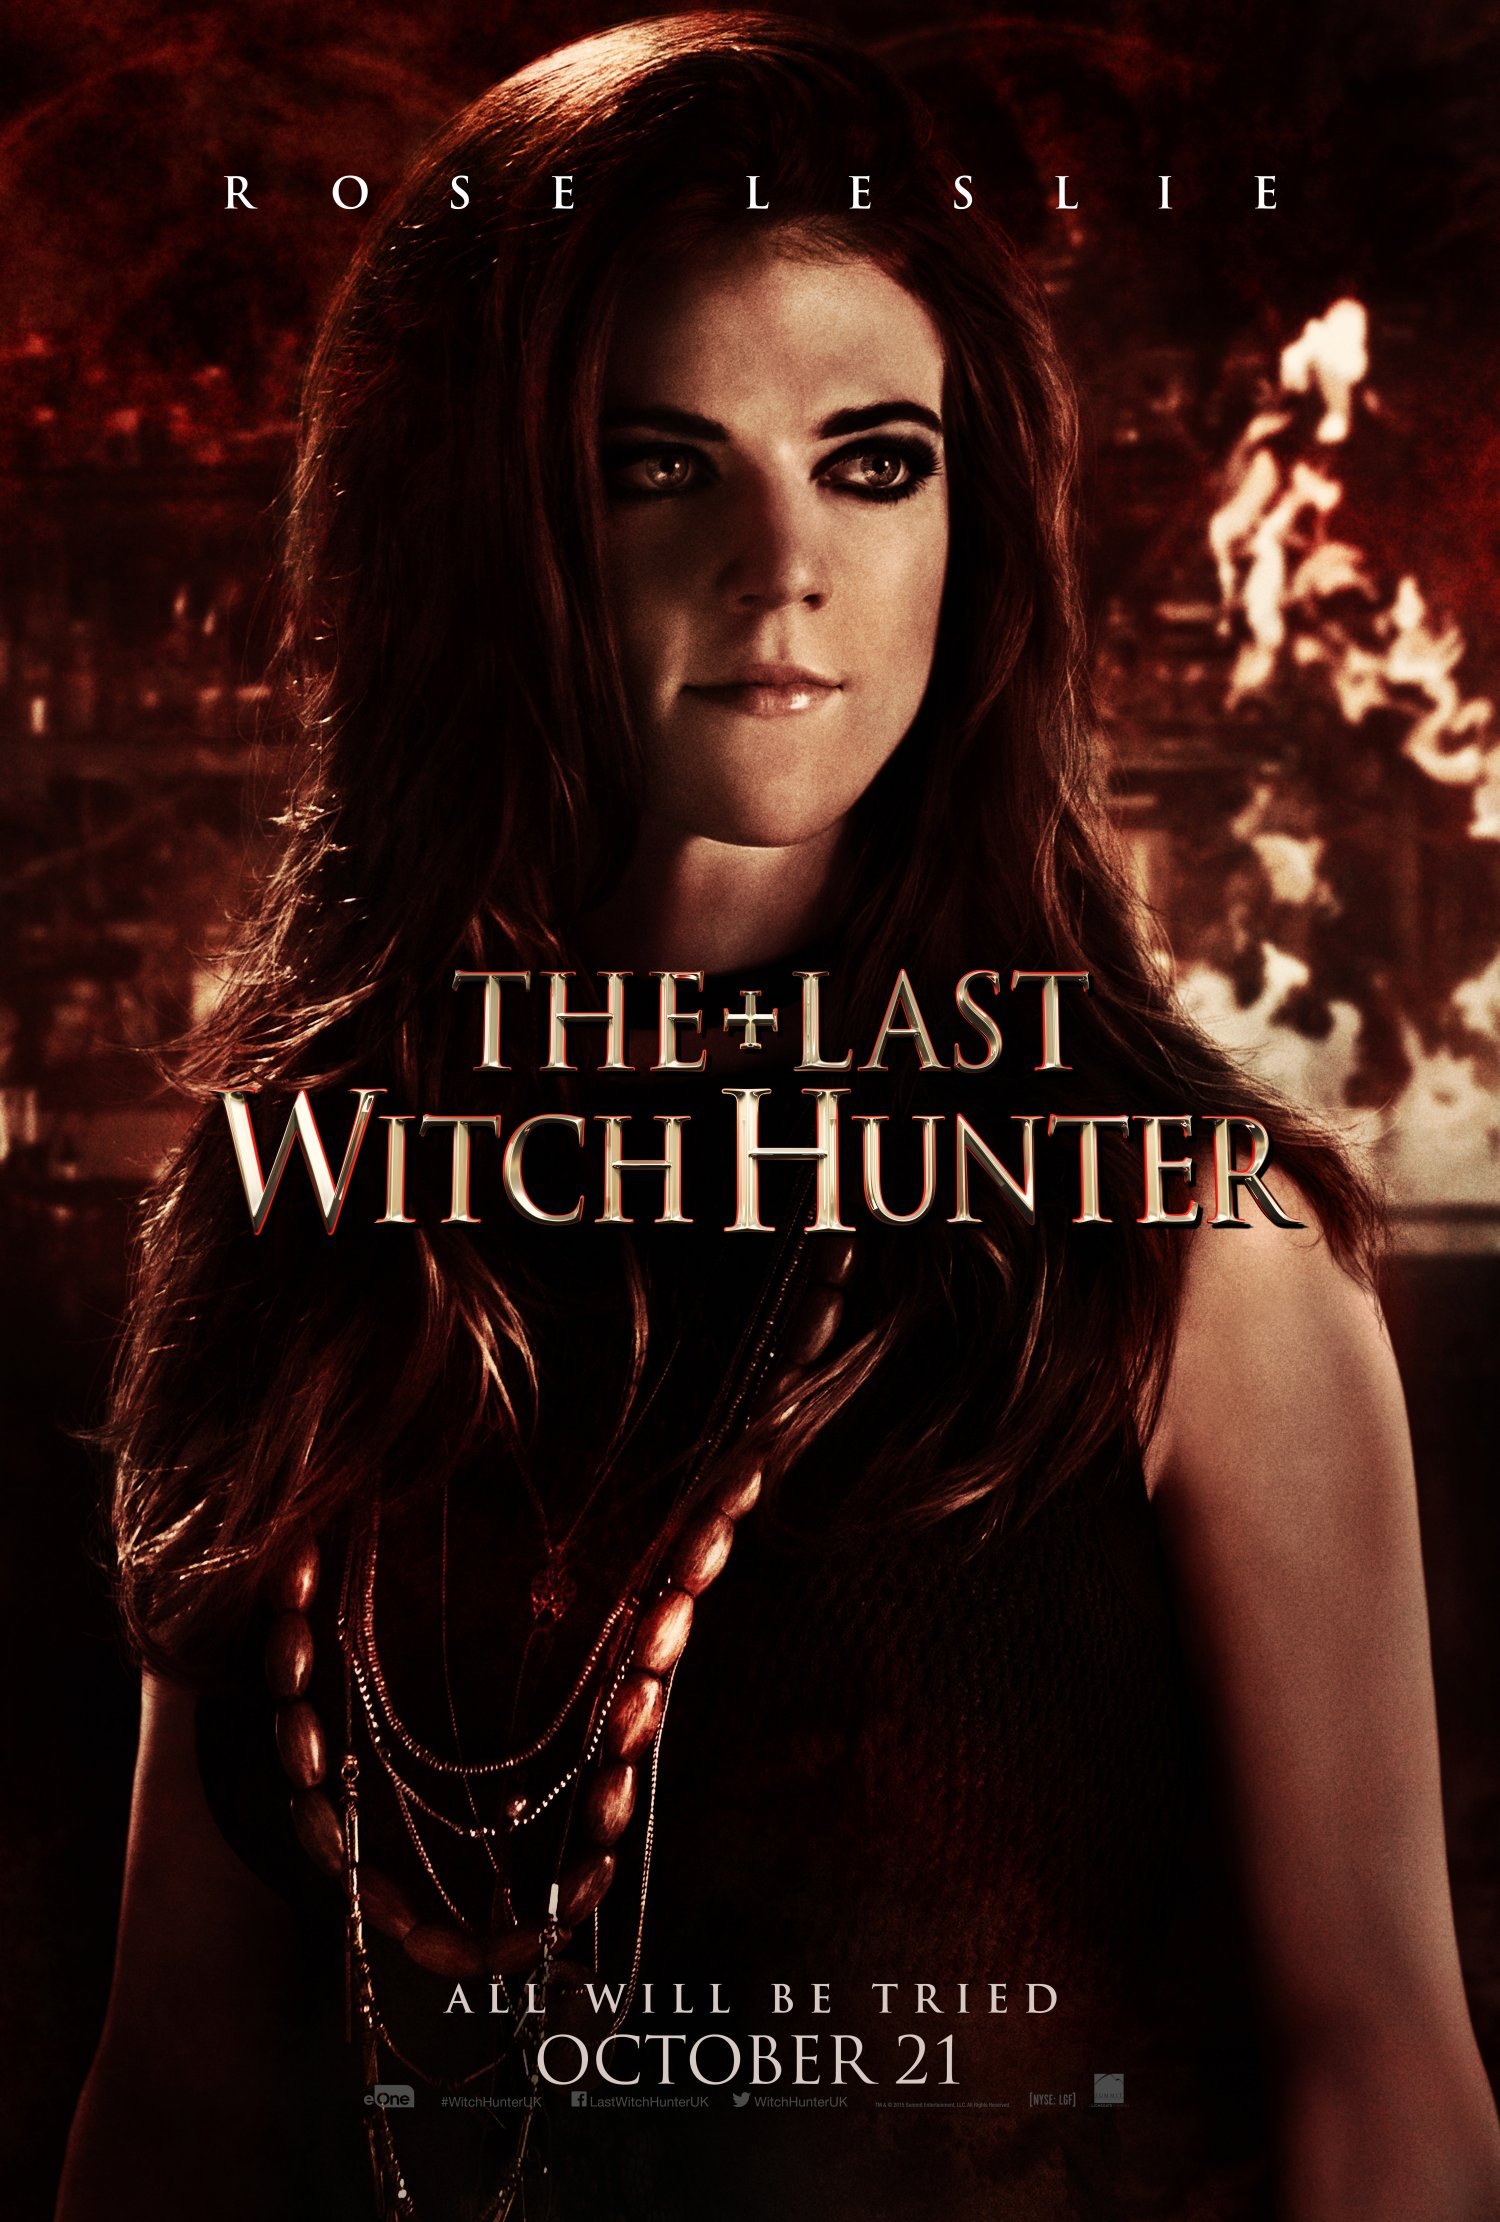 The Last Witch Hunter – Rose Leslie